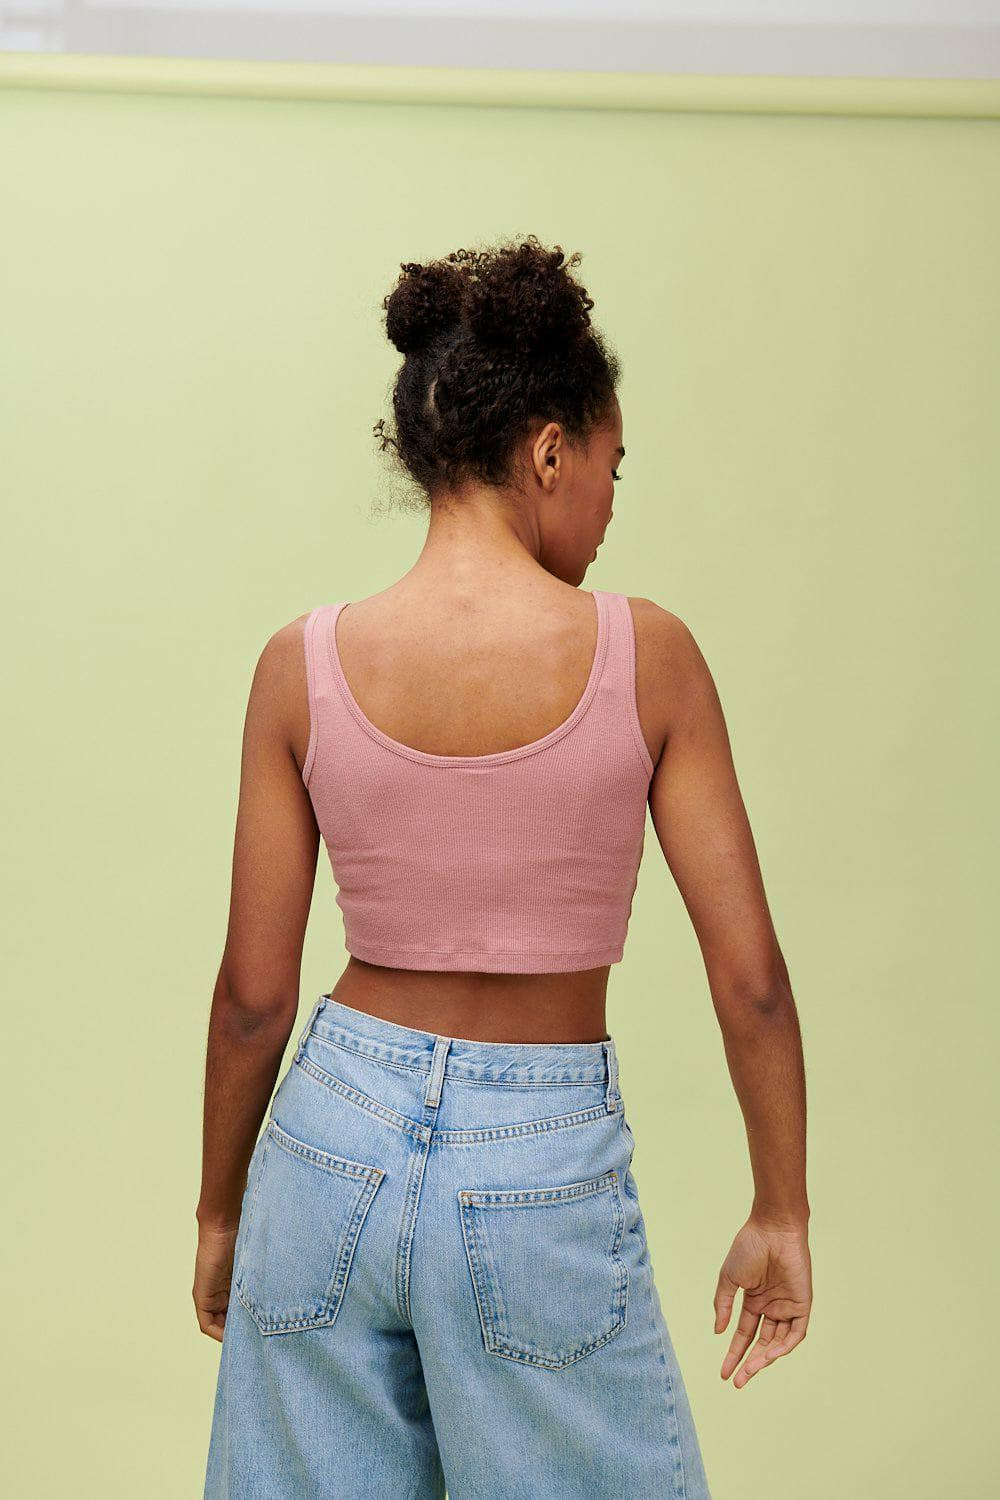 Lucy & Yak Tops 'Piper' Crop Vest Top in Ash Pink